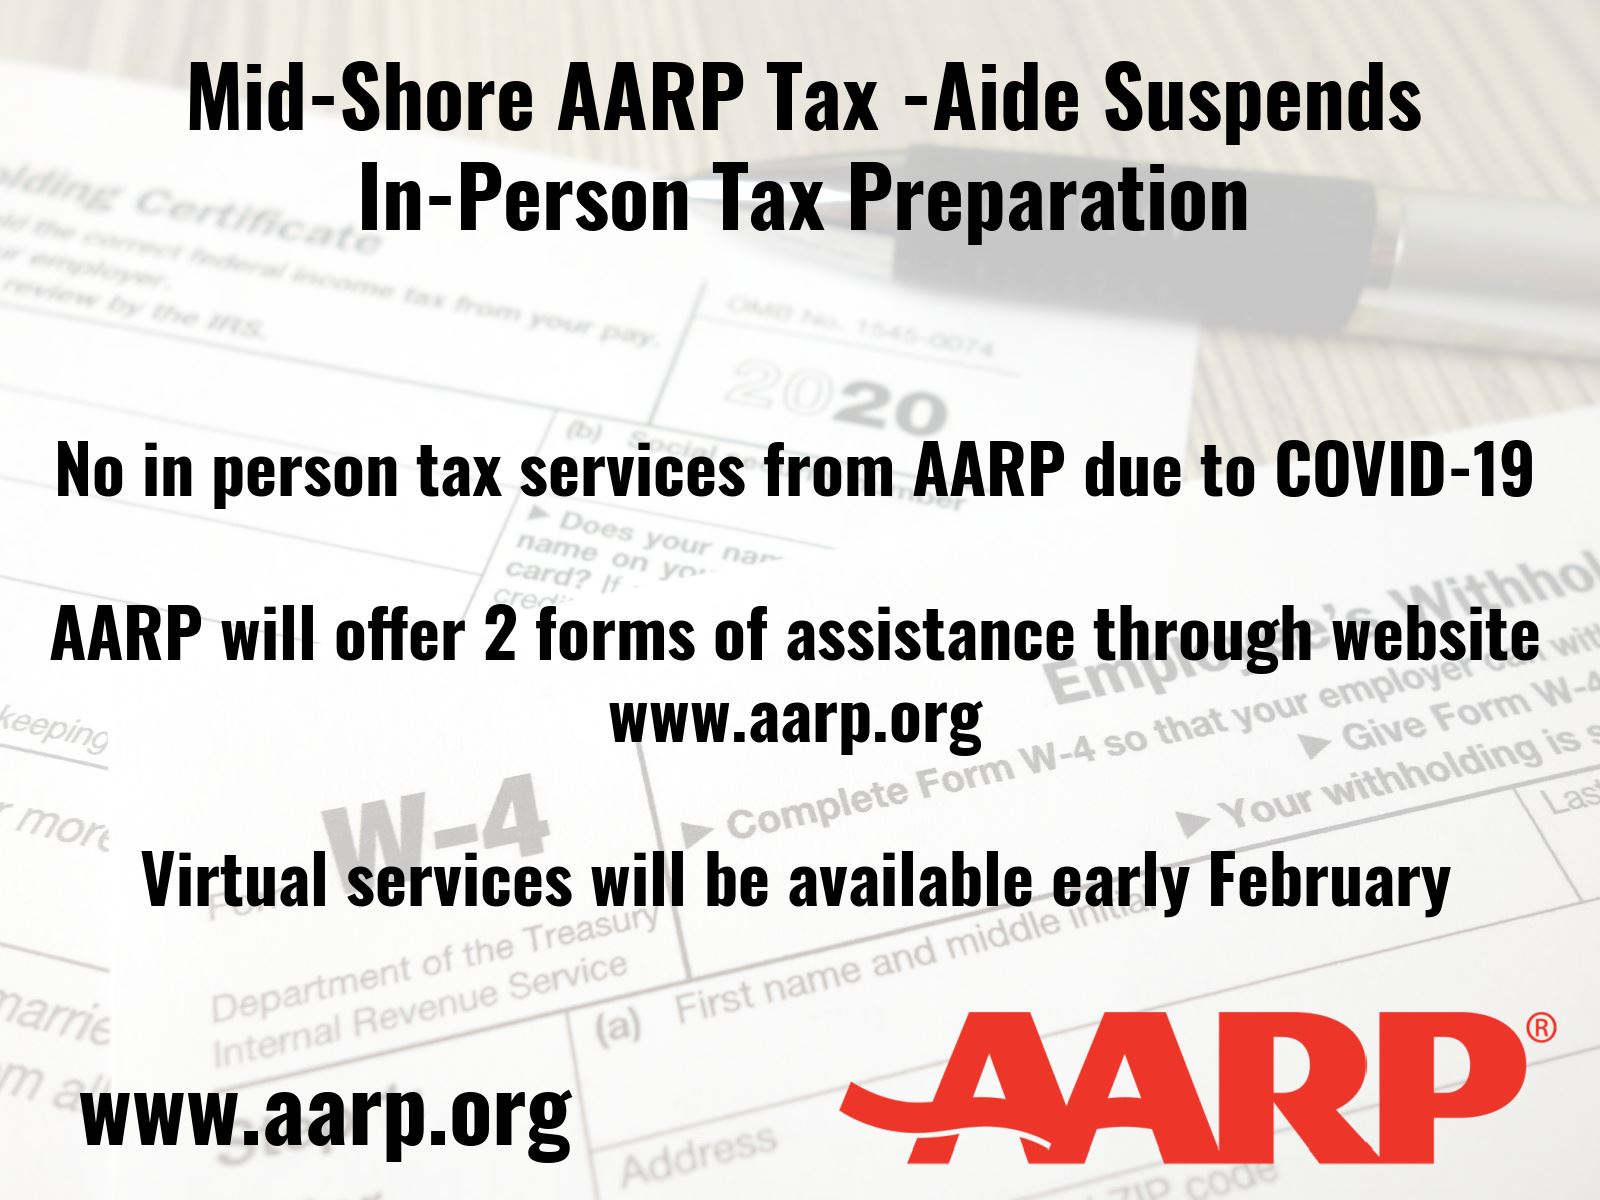 AARP Tax Services